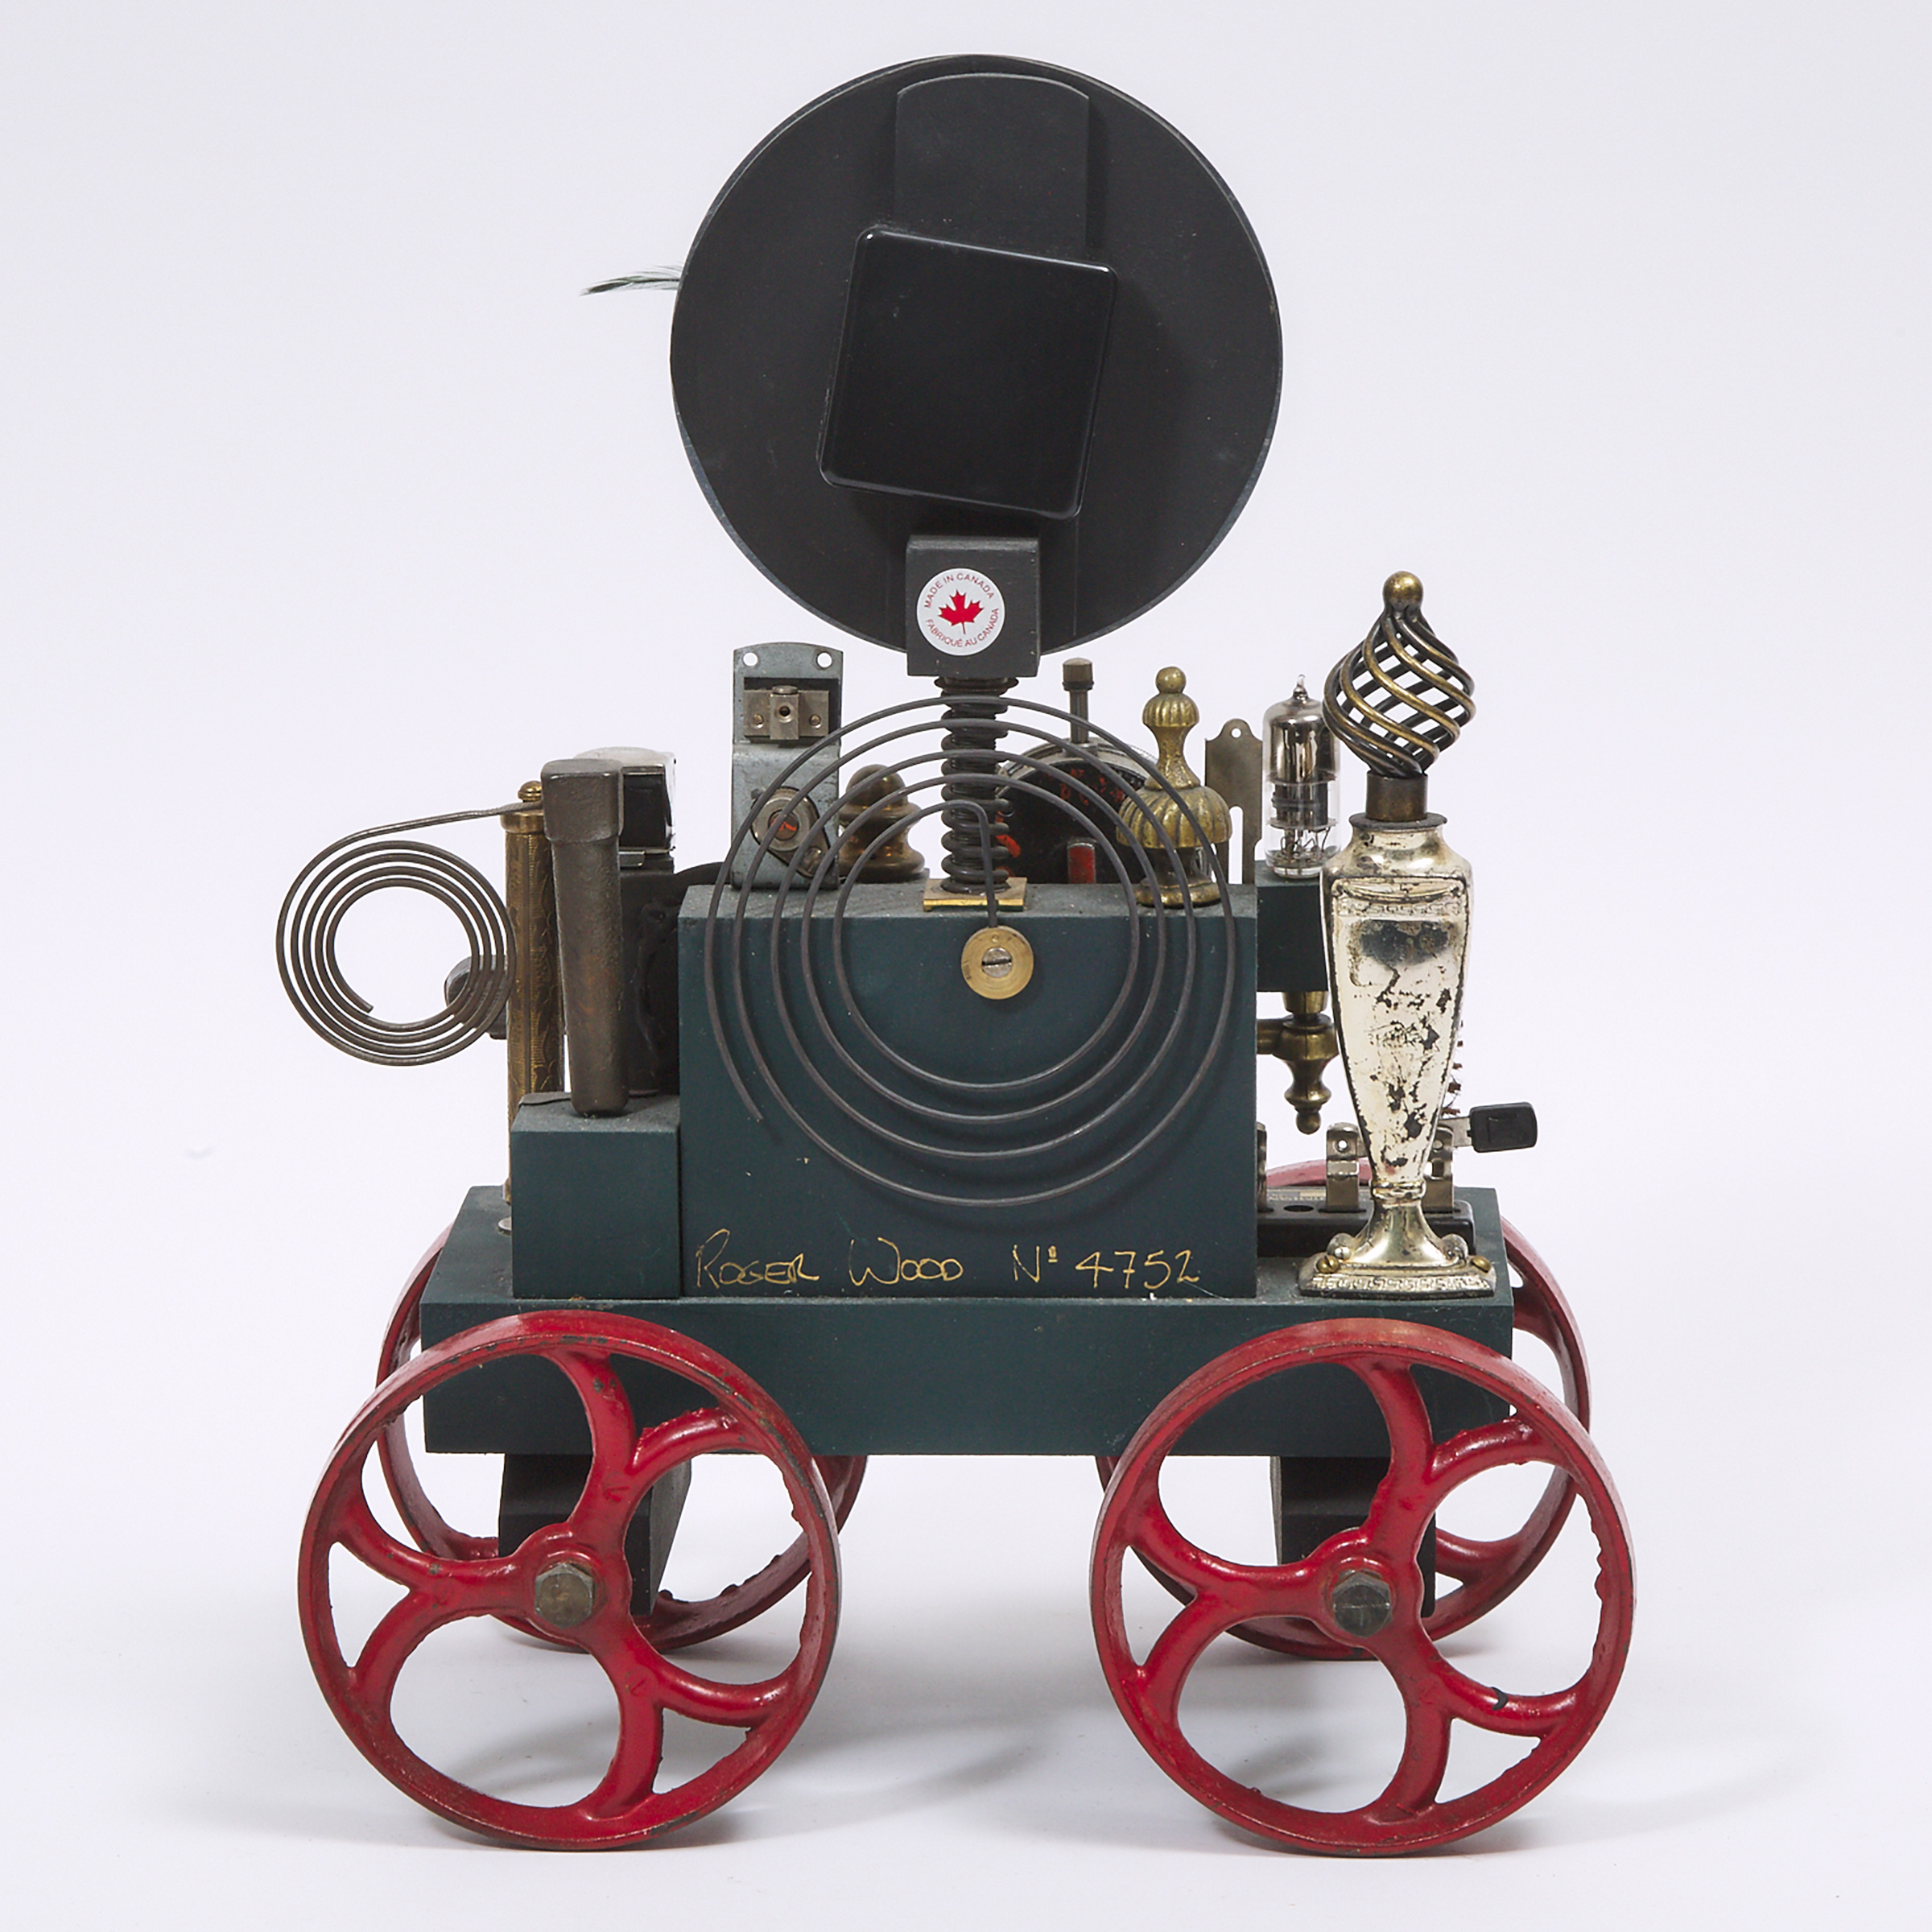 Klockwerks Industrial Steampunk Table 'Carriage' Clock by Roger Wood, Hamilton, 21st century